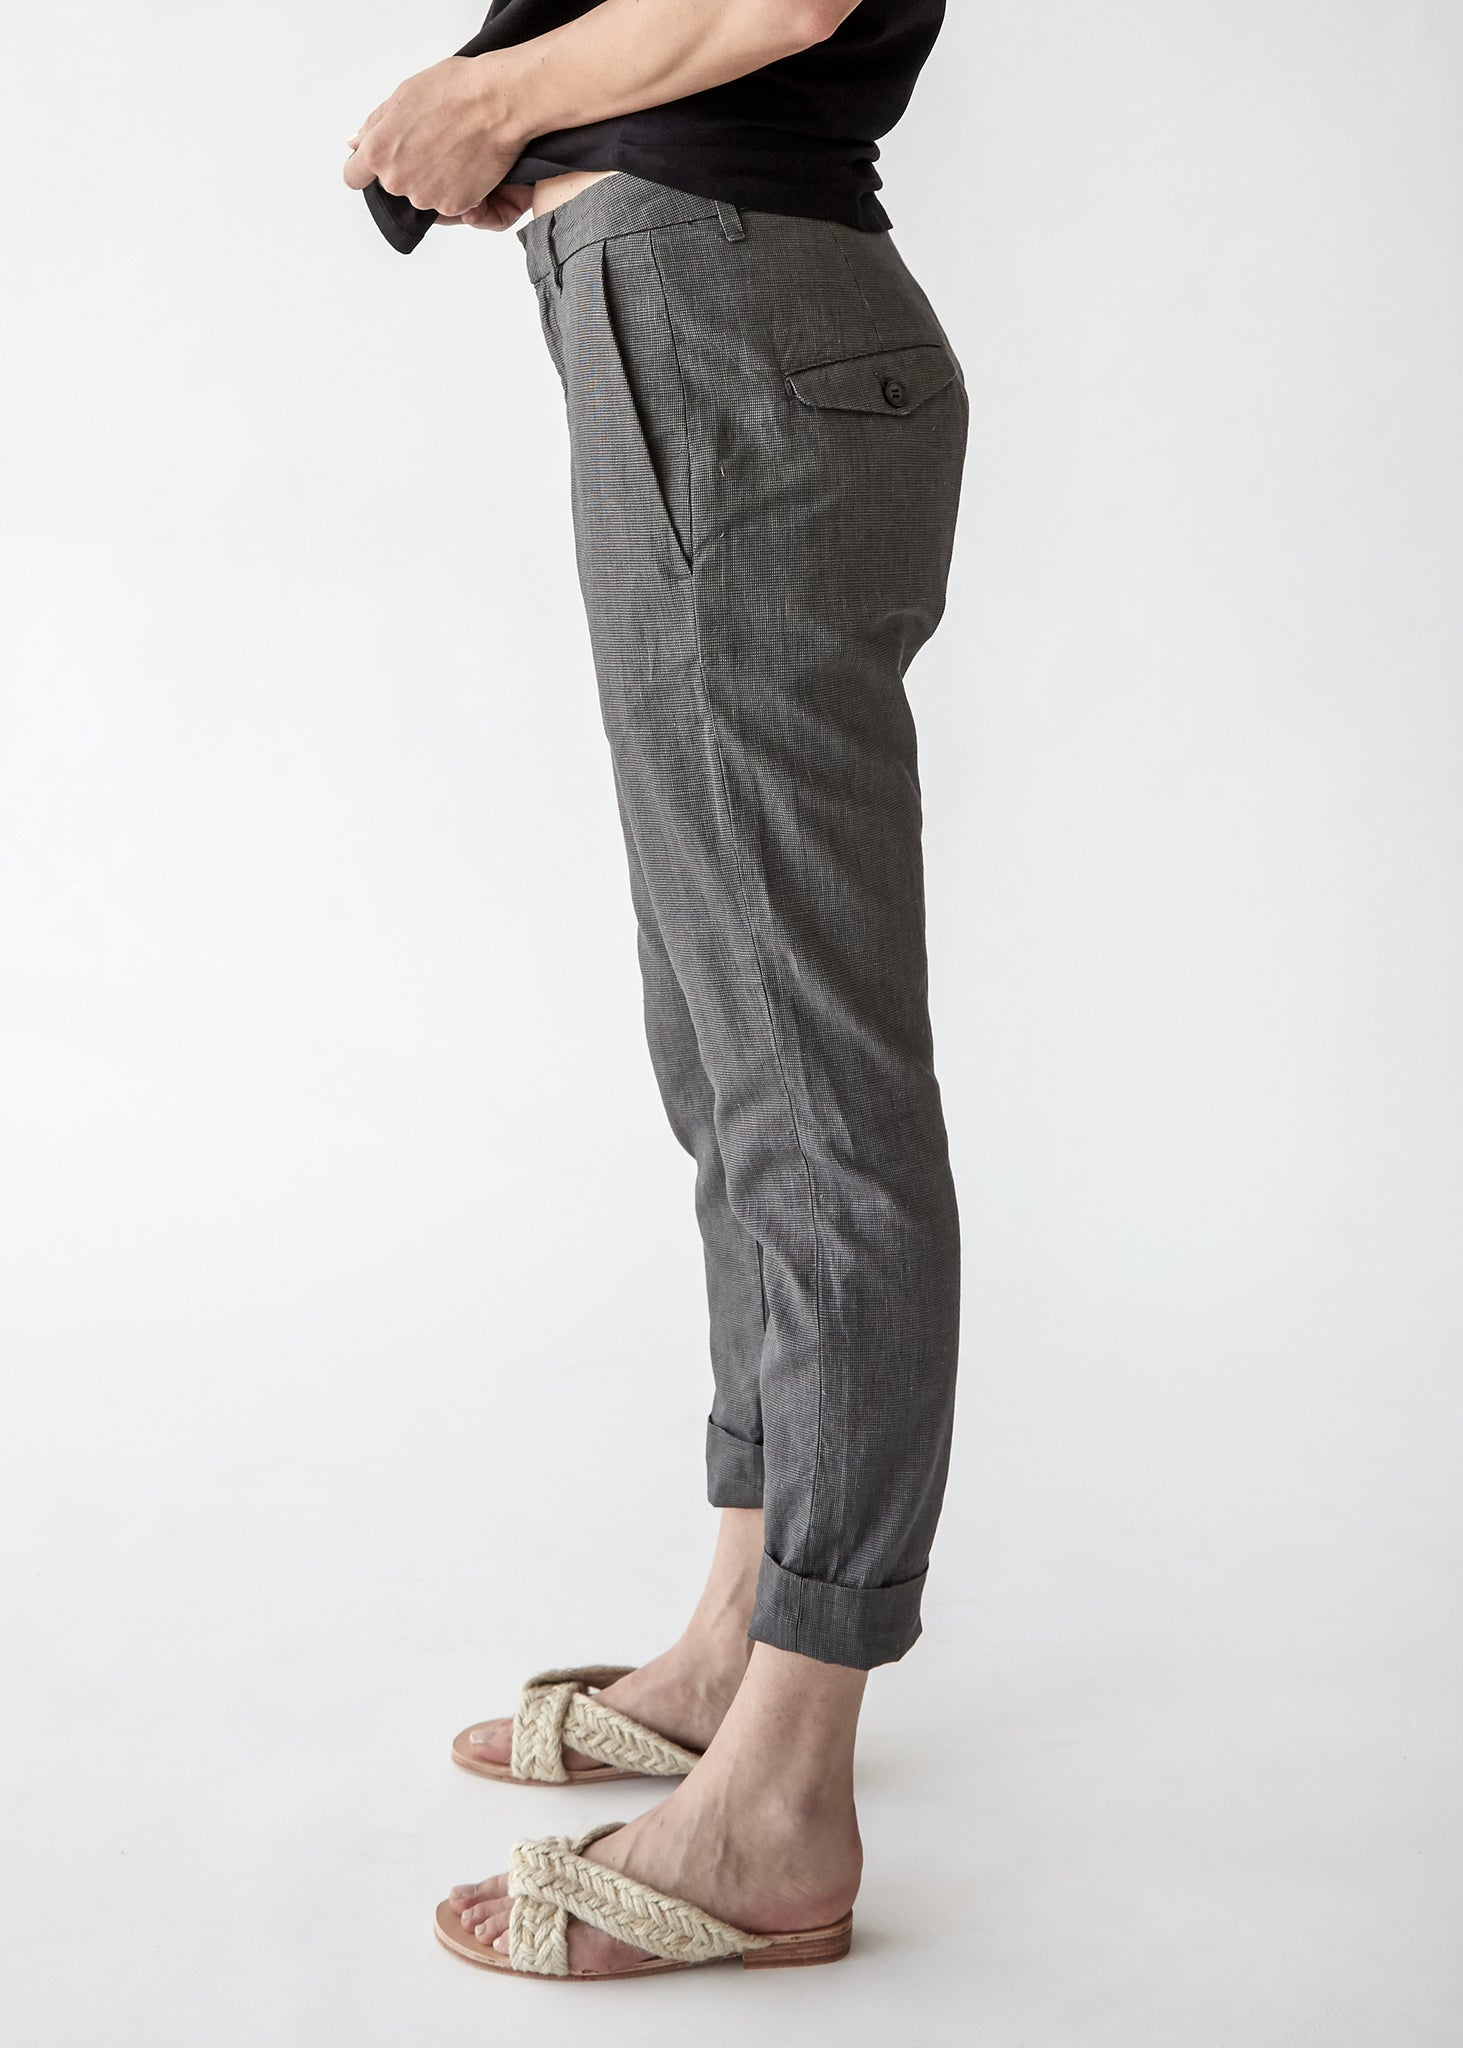 News Trouser in Grey Dogtooth - SOLD OUT